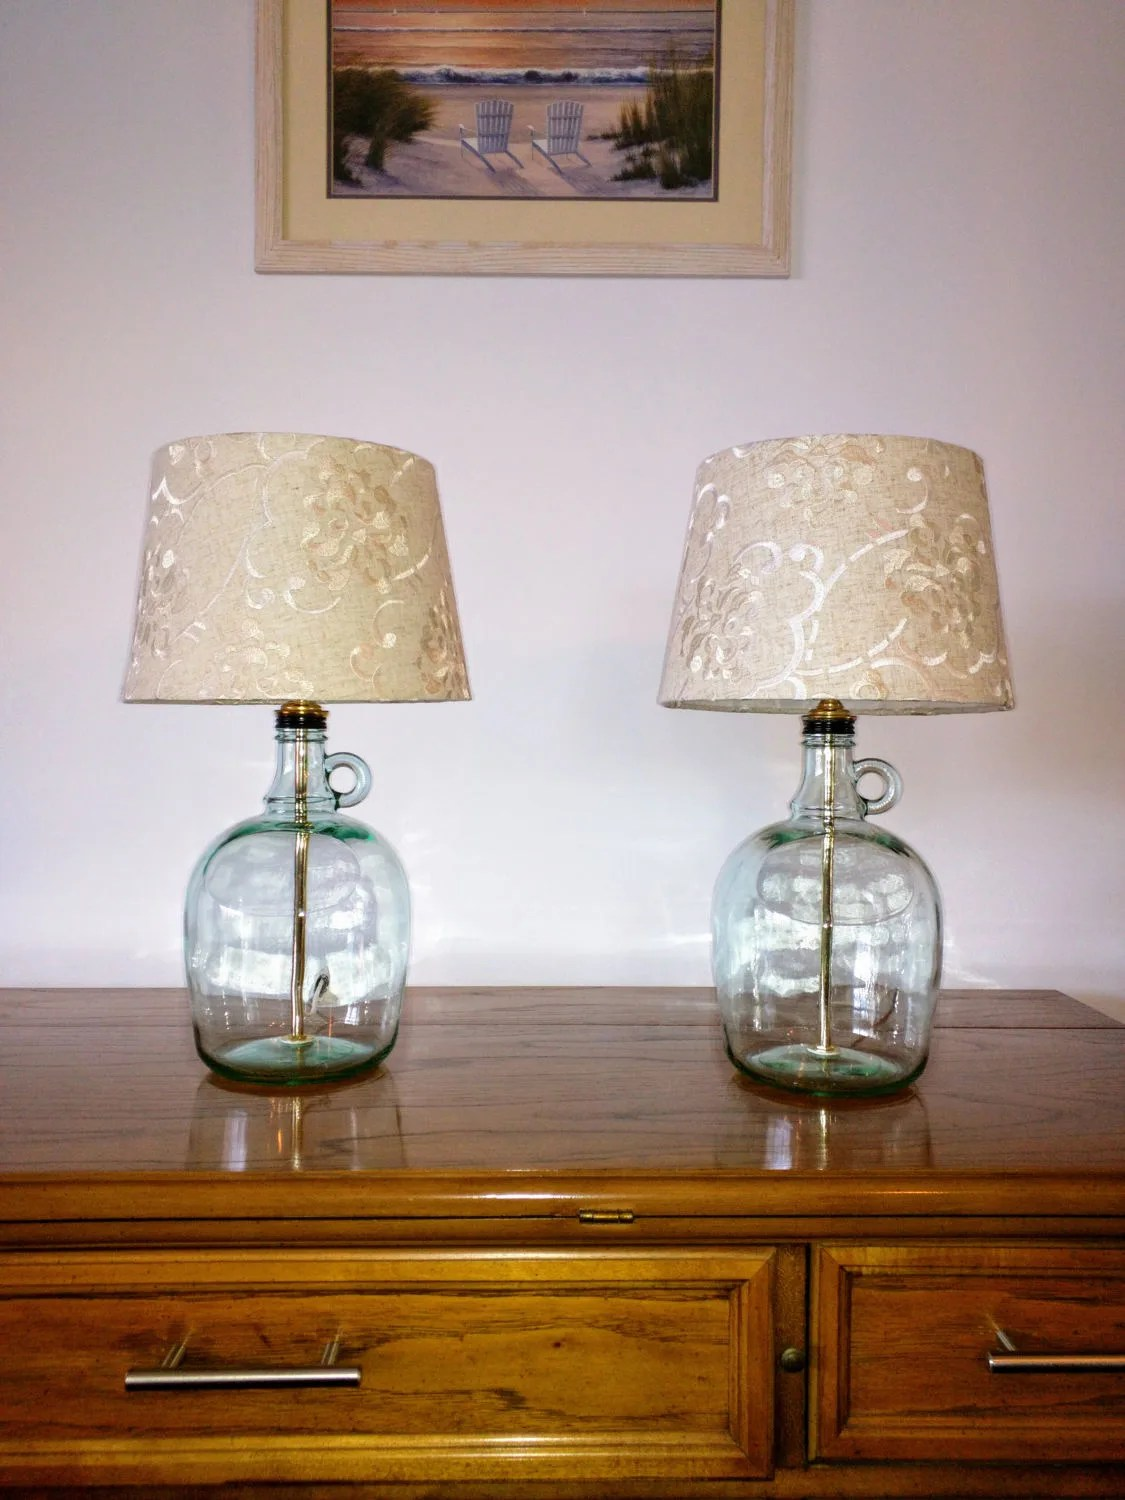 Small Lamps For Bedrooms Table Lamp Bedside Lamps Small Table Lamp Set Of 2 Table Lamps Glass Table Lamp Bedroom Lamp Modern Decor Glass Bottle Lamp